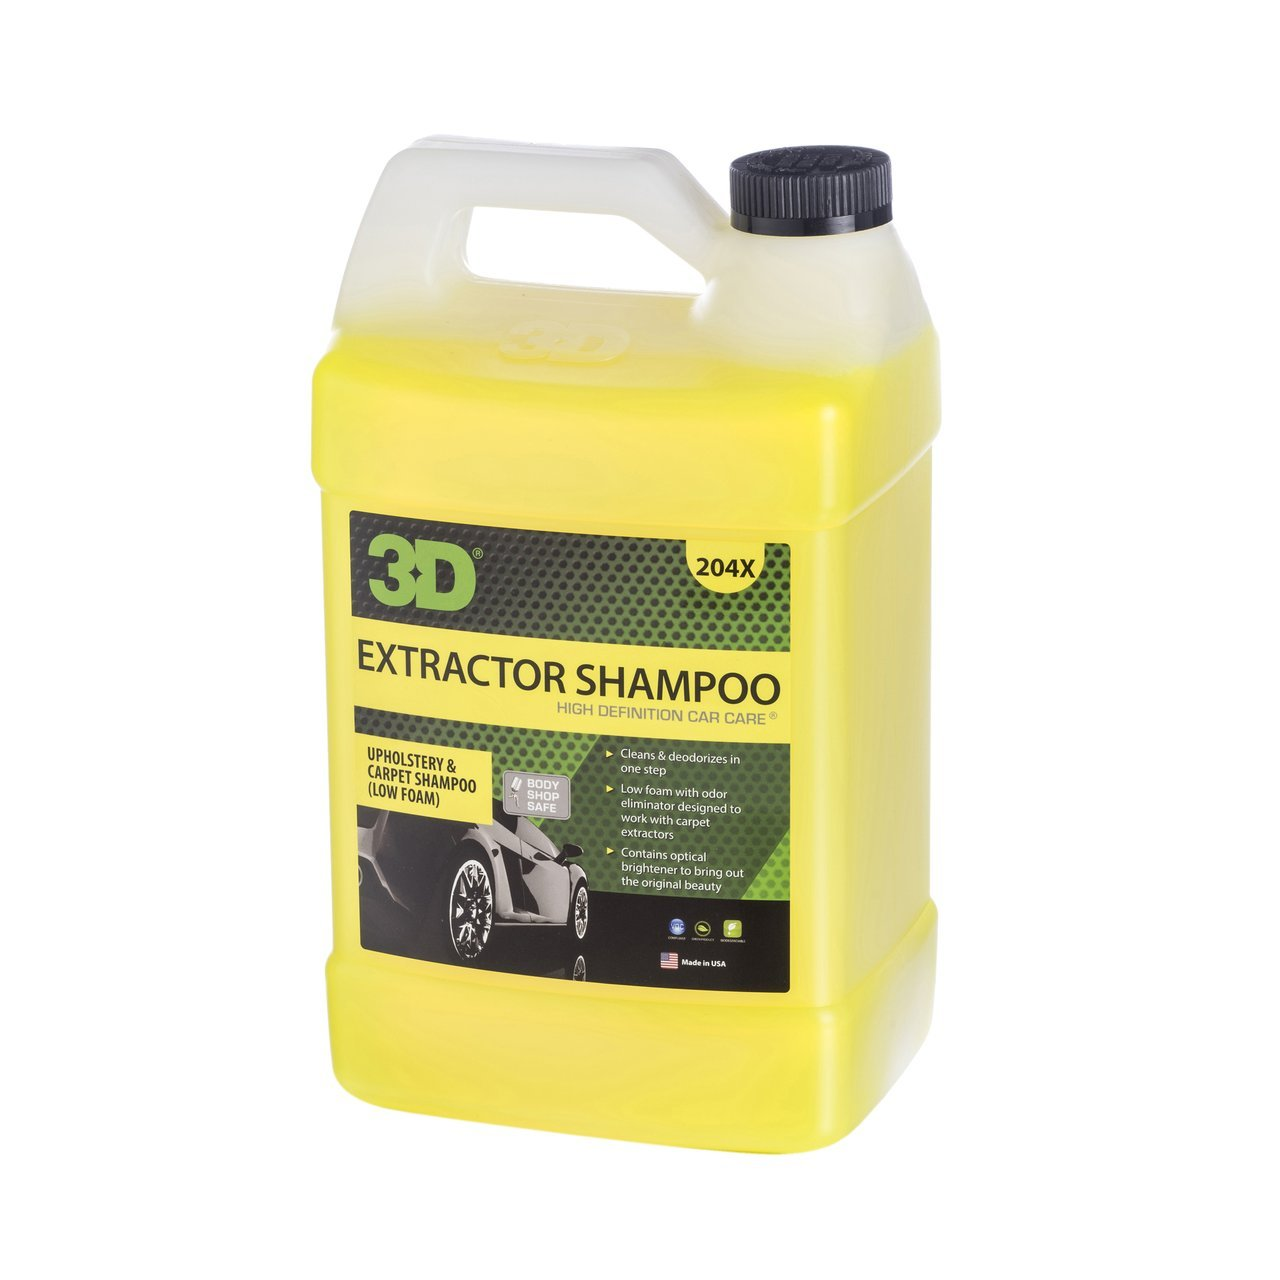 3D Extractor Shampoo Upholstery Cleaner - 1 Gallon | No Residue Low Foam Carpet Degreaser & Stain Remover | Cleans & Deodorizes | Odor Eliminator | Made in USA | All Natural | No Harmful Chemicals by 3D Auto Detailing Products